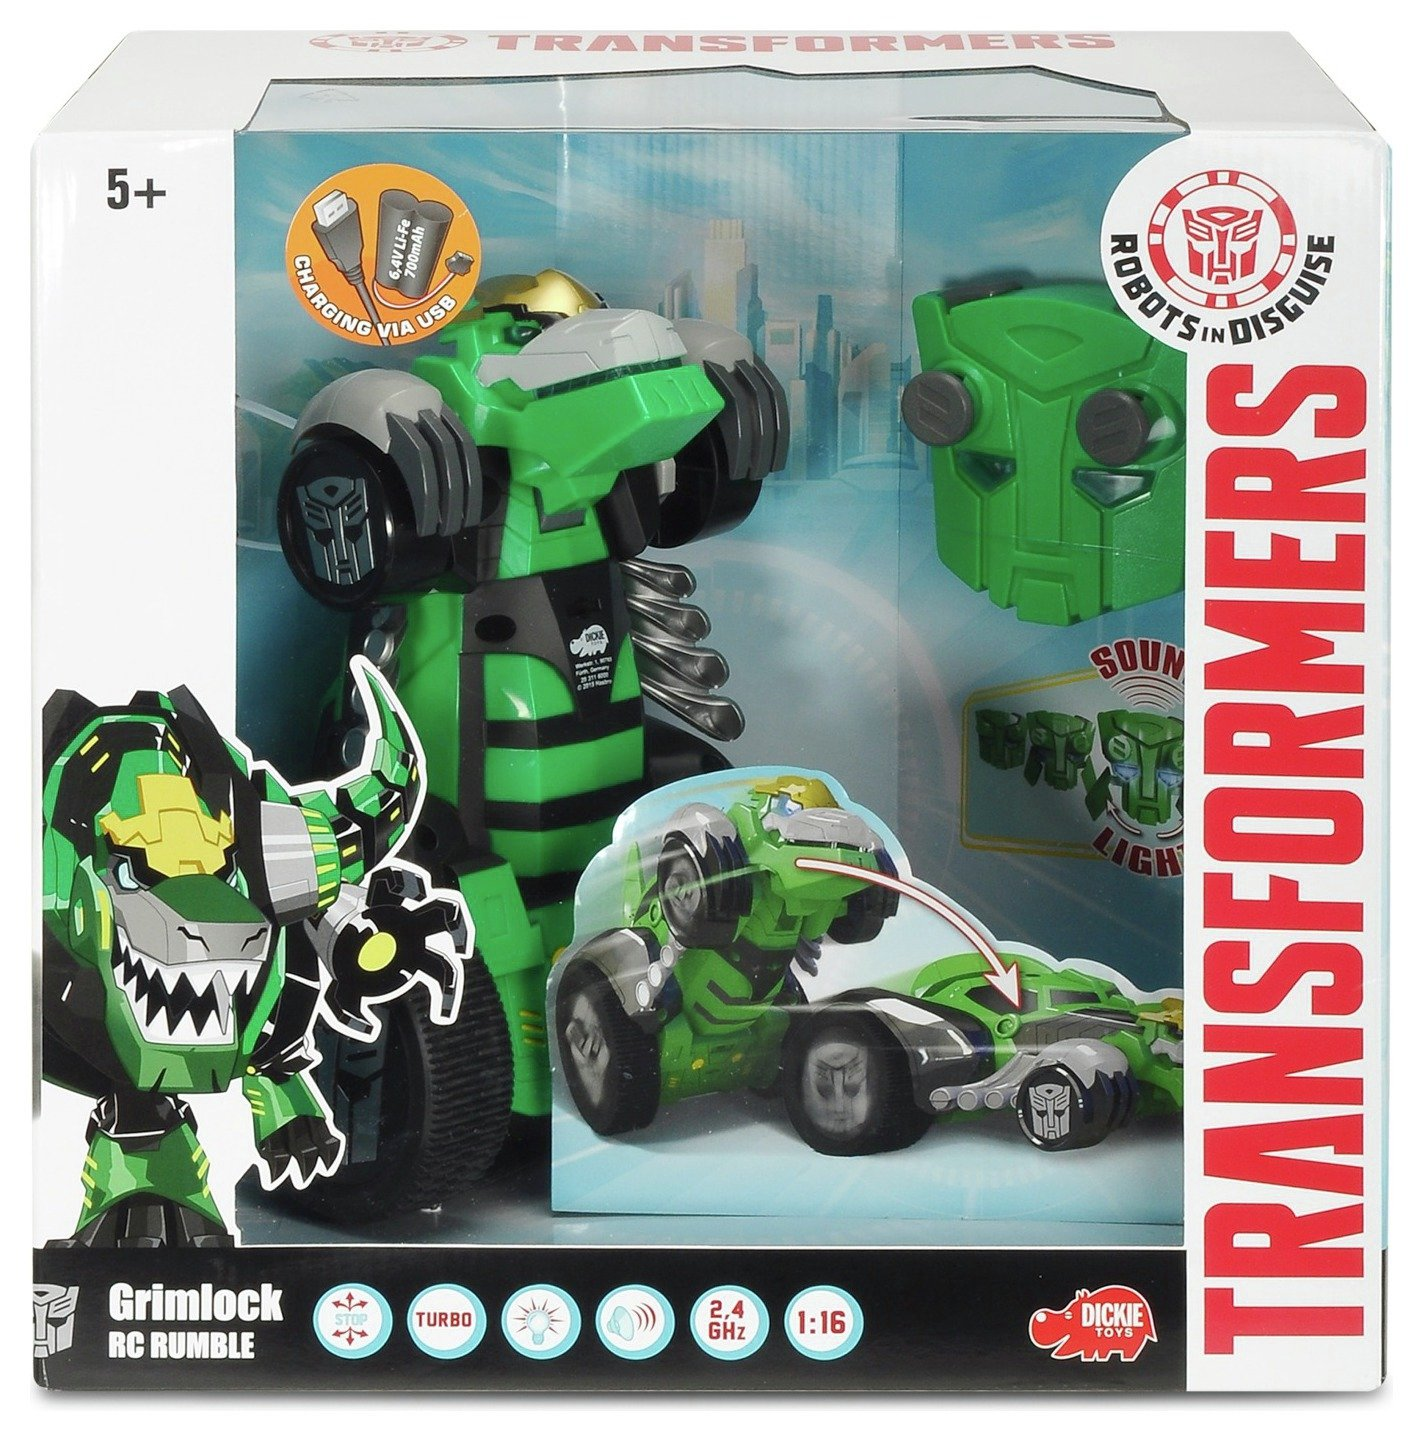 Dickie 1:16 RC Rumble Grimlock